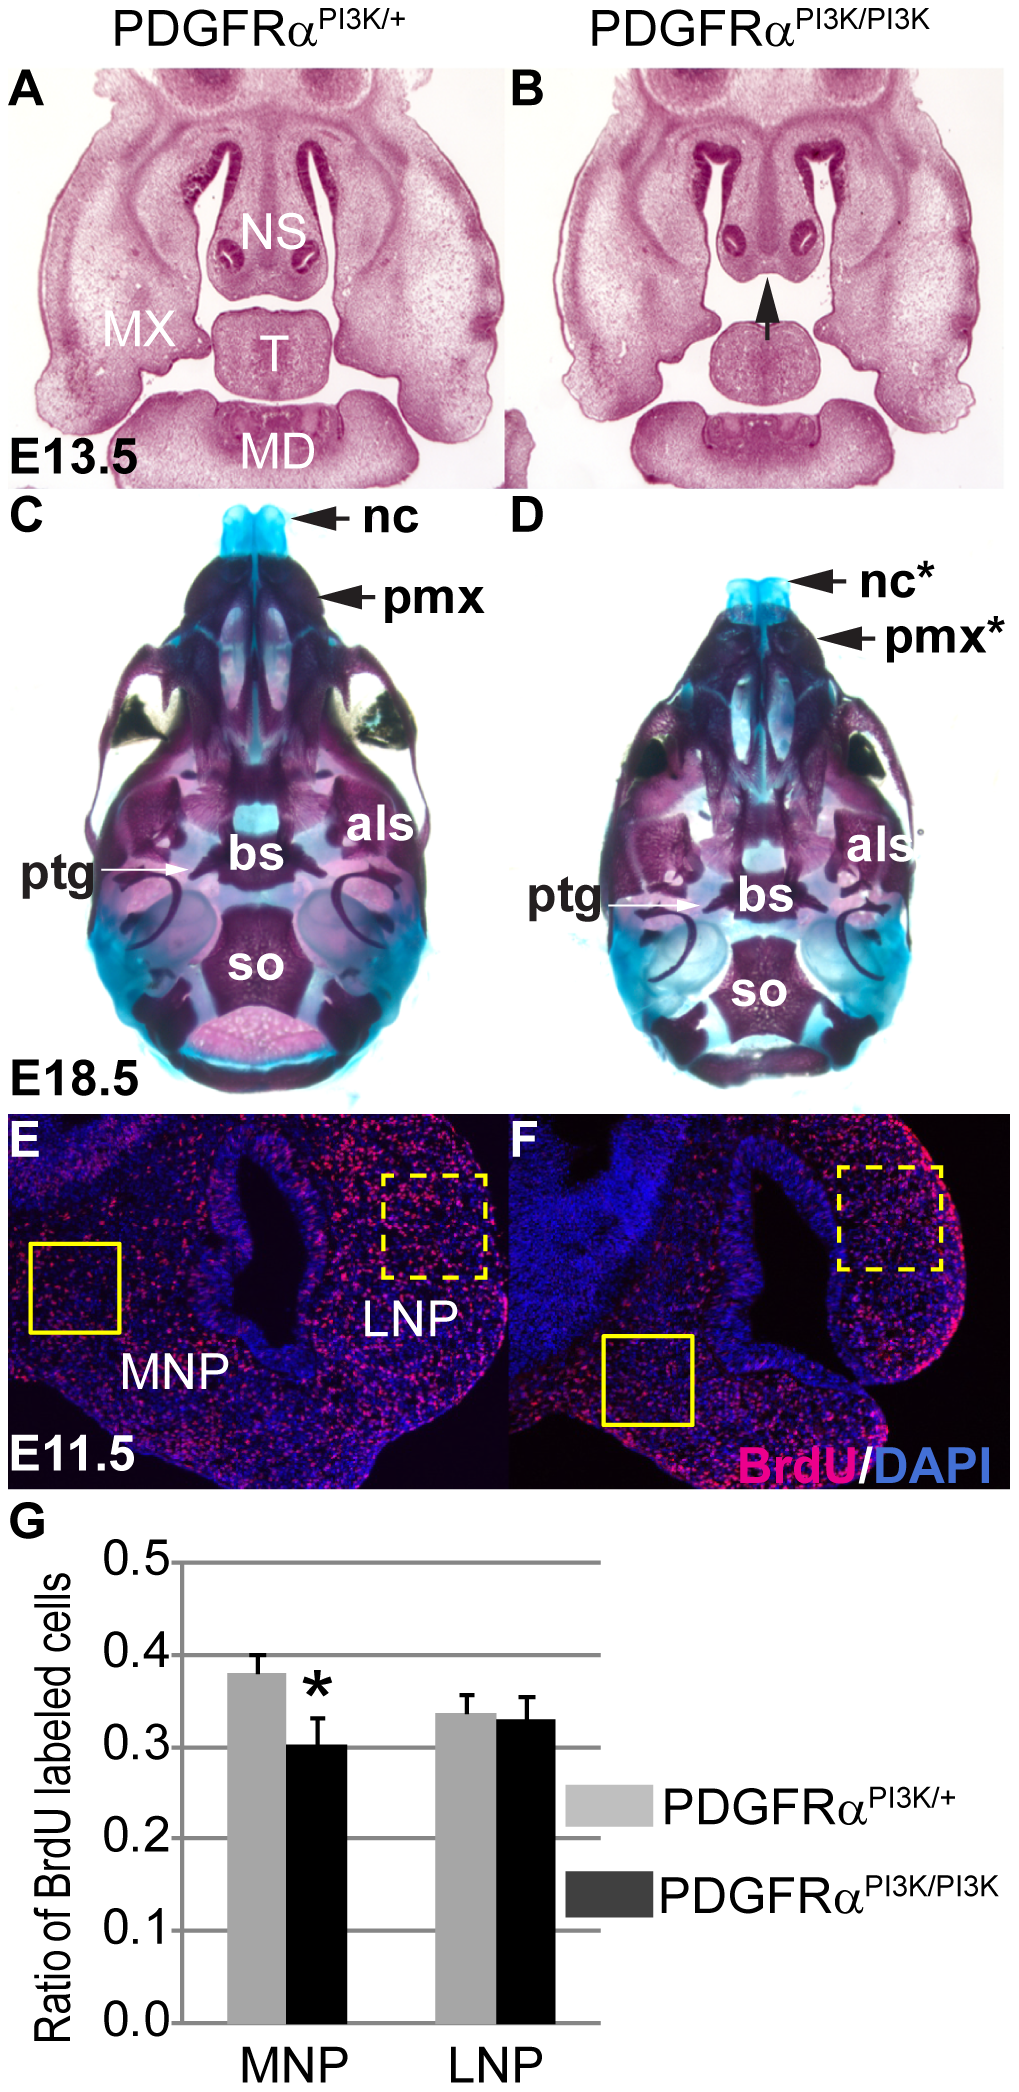 PI3K signaling mediates PDGFRα regulation on cell proliferation during MNP development.